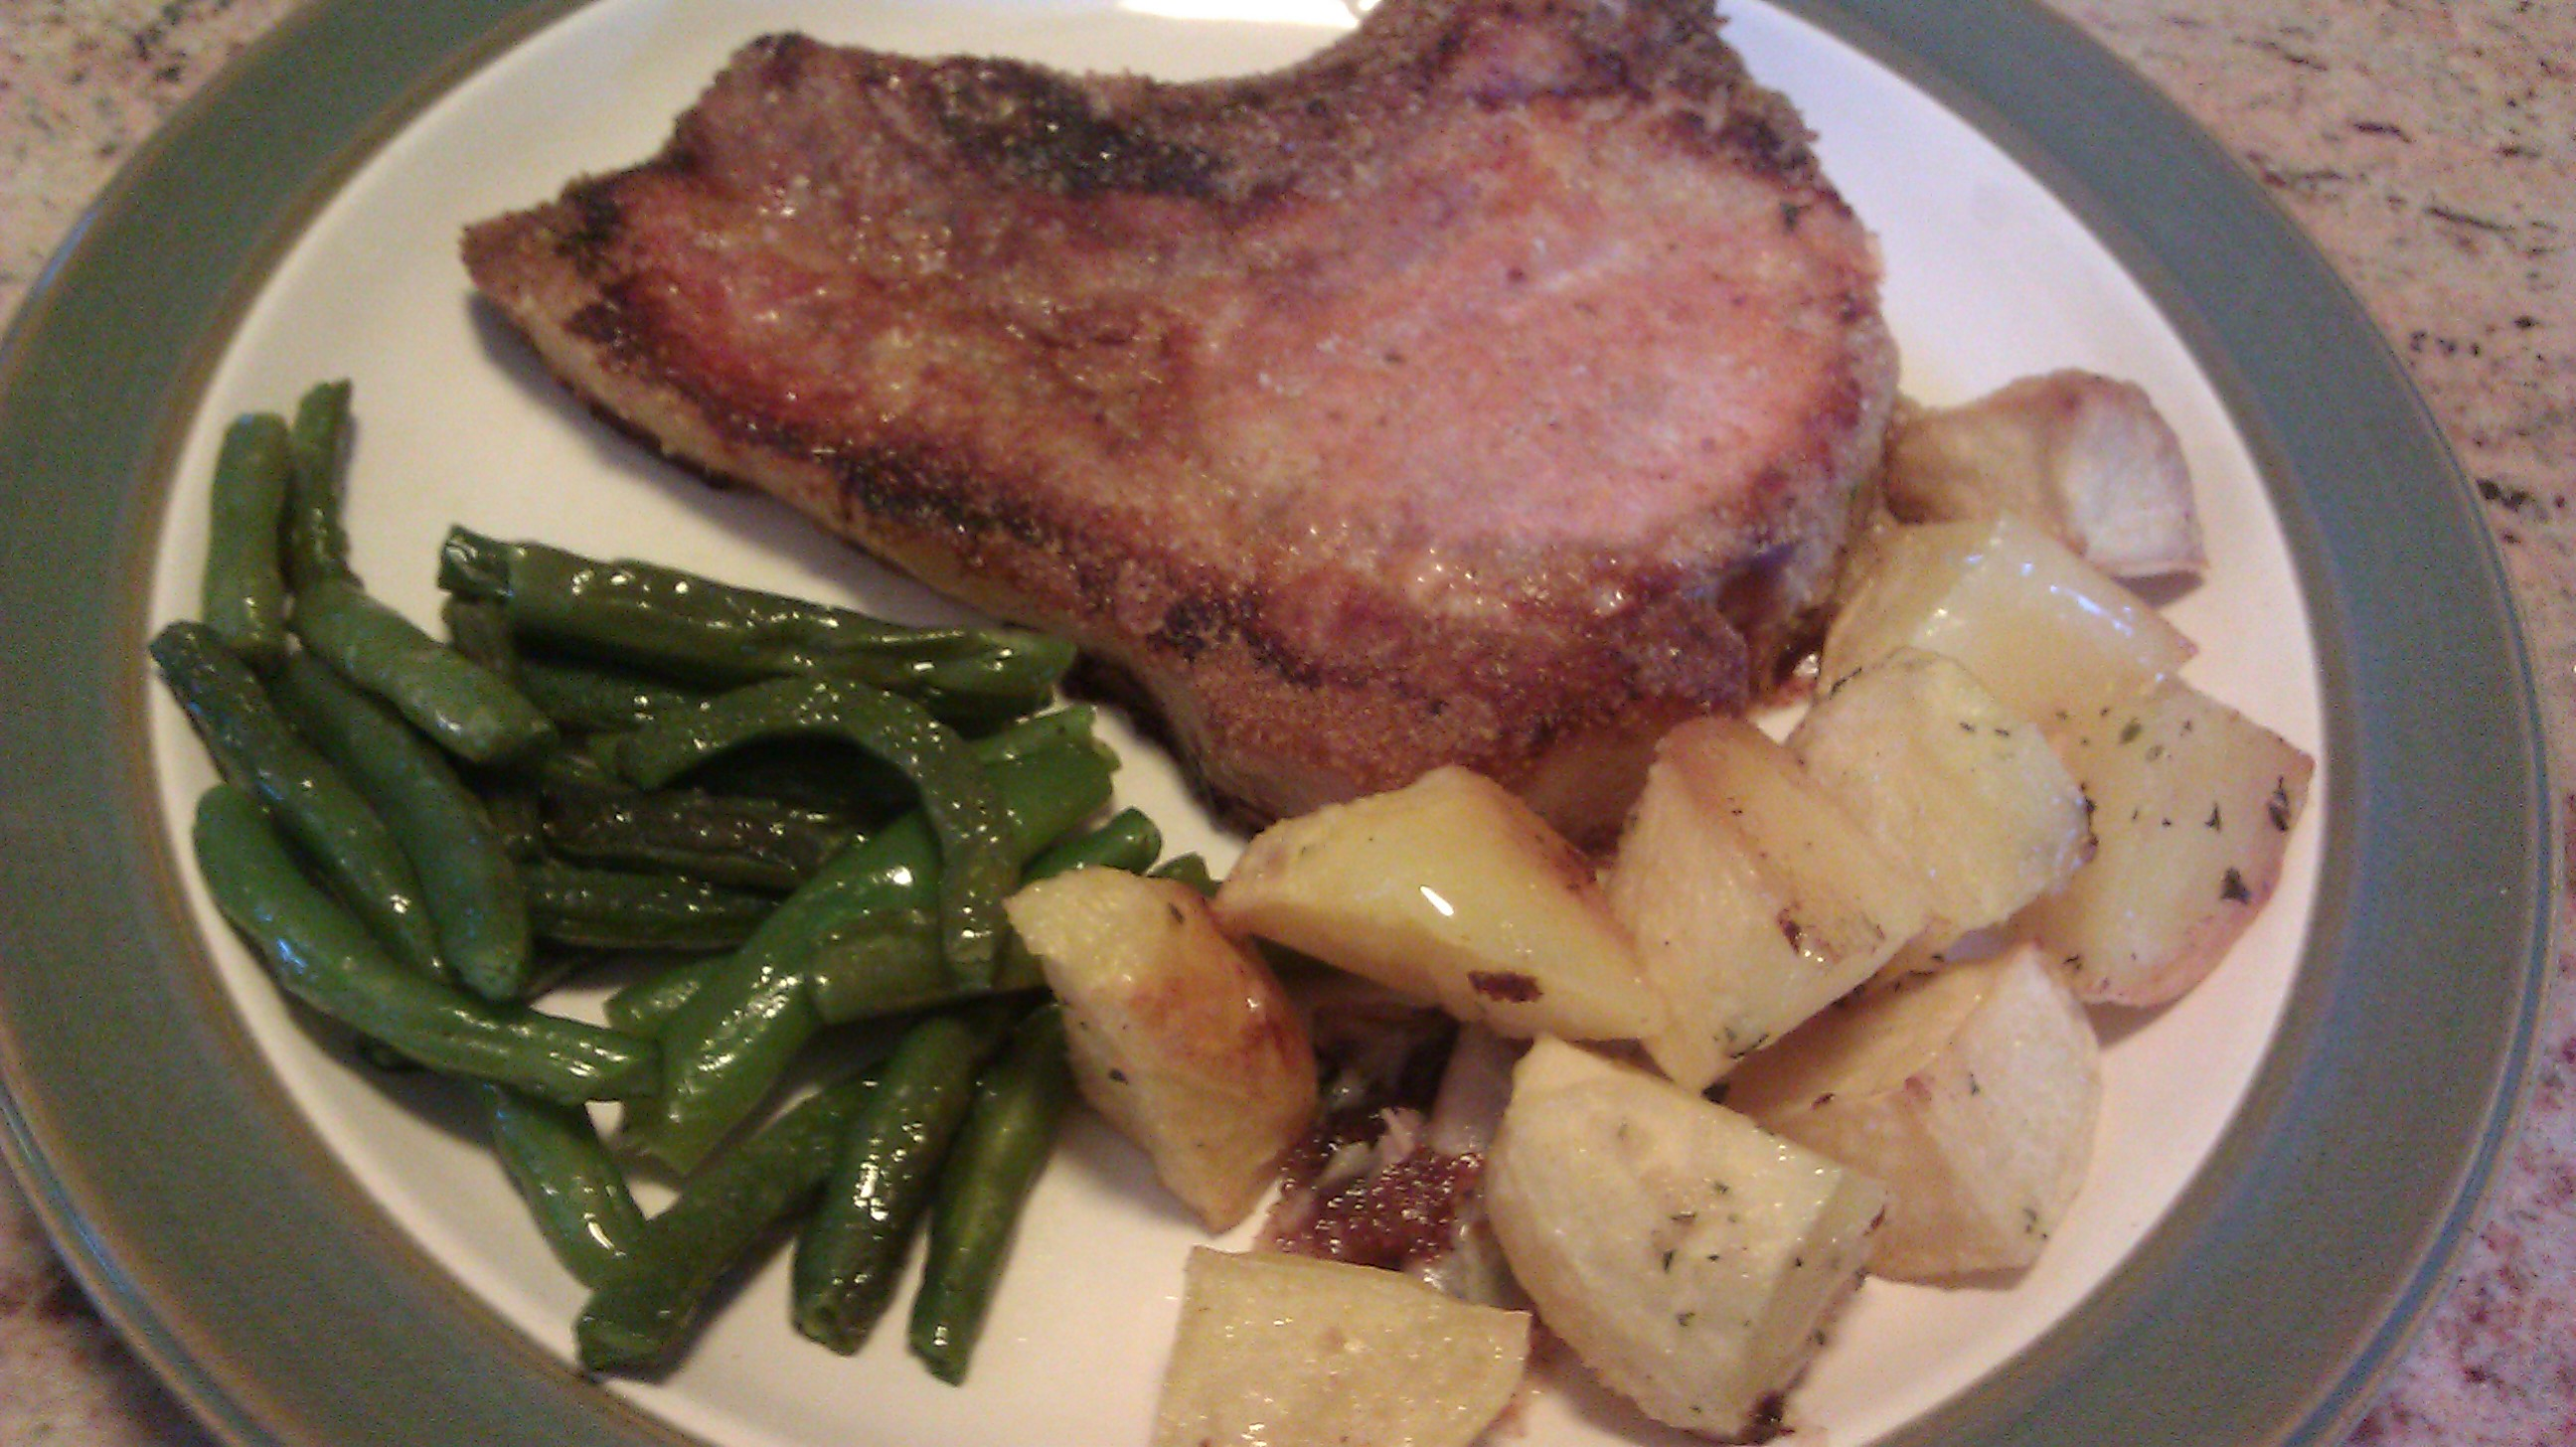 Not Quite a Recipe for Pork Chops with Roasted Potatoes and Green Beans